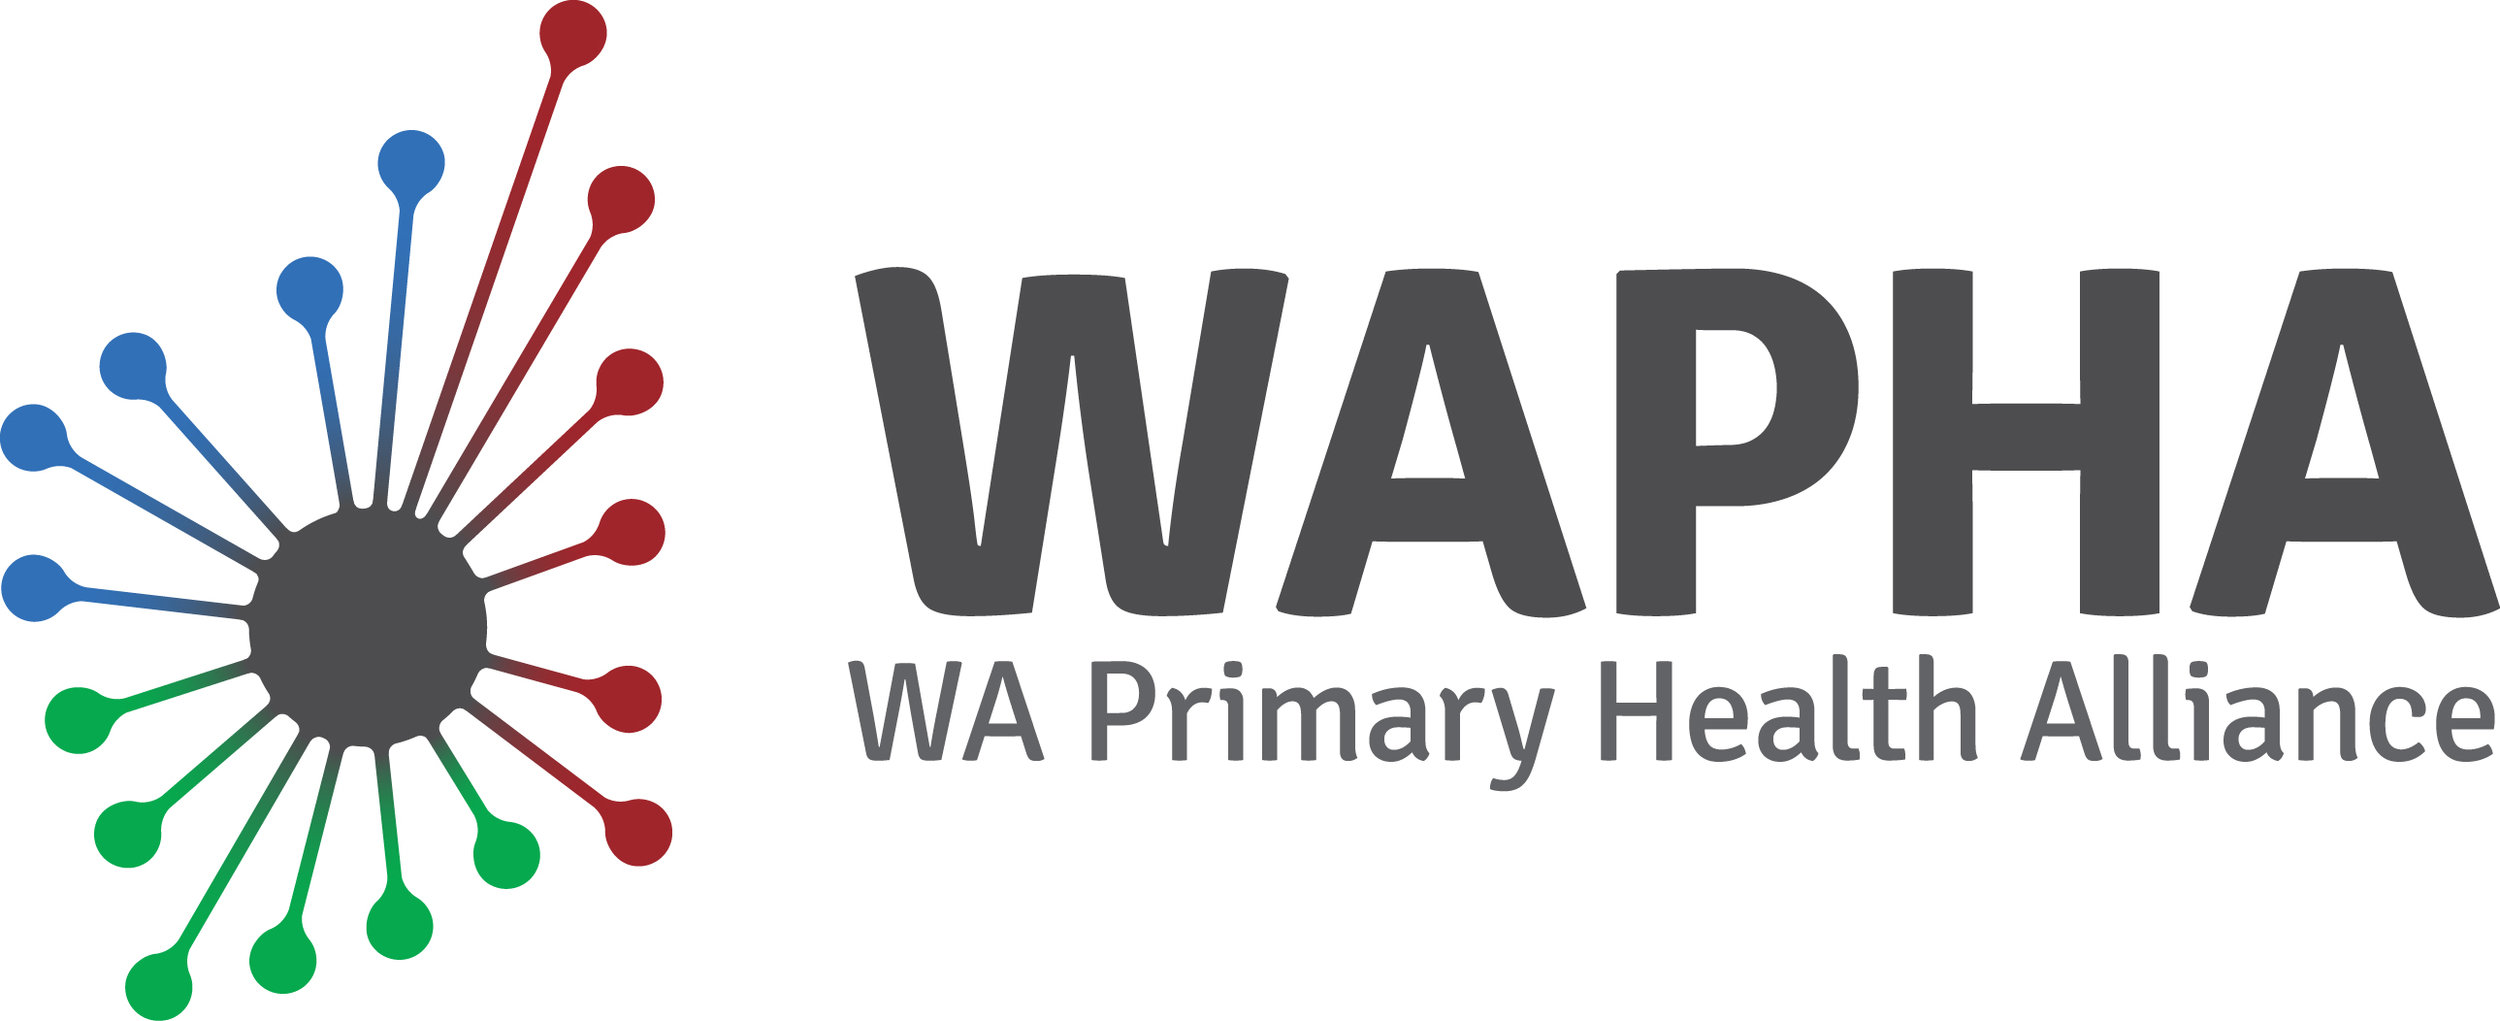 WAPHA logo NEW.JPG